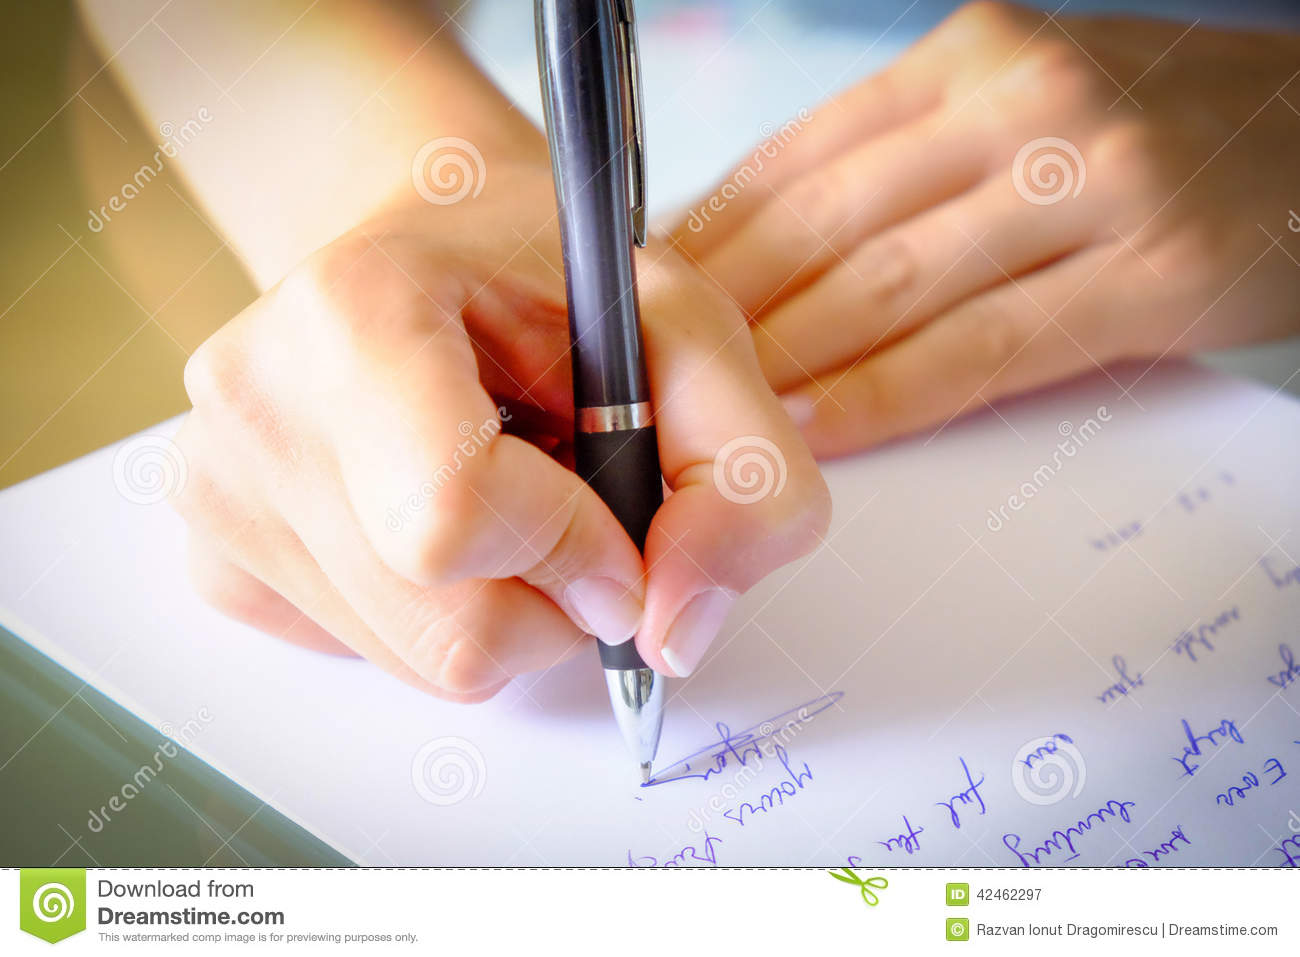 Letter stock images download 301036 photos writing a letter girl writing down a letter on a white sheet of paper with altavistaventures Images